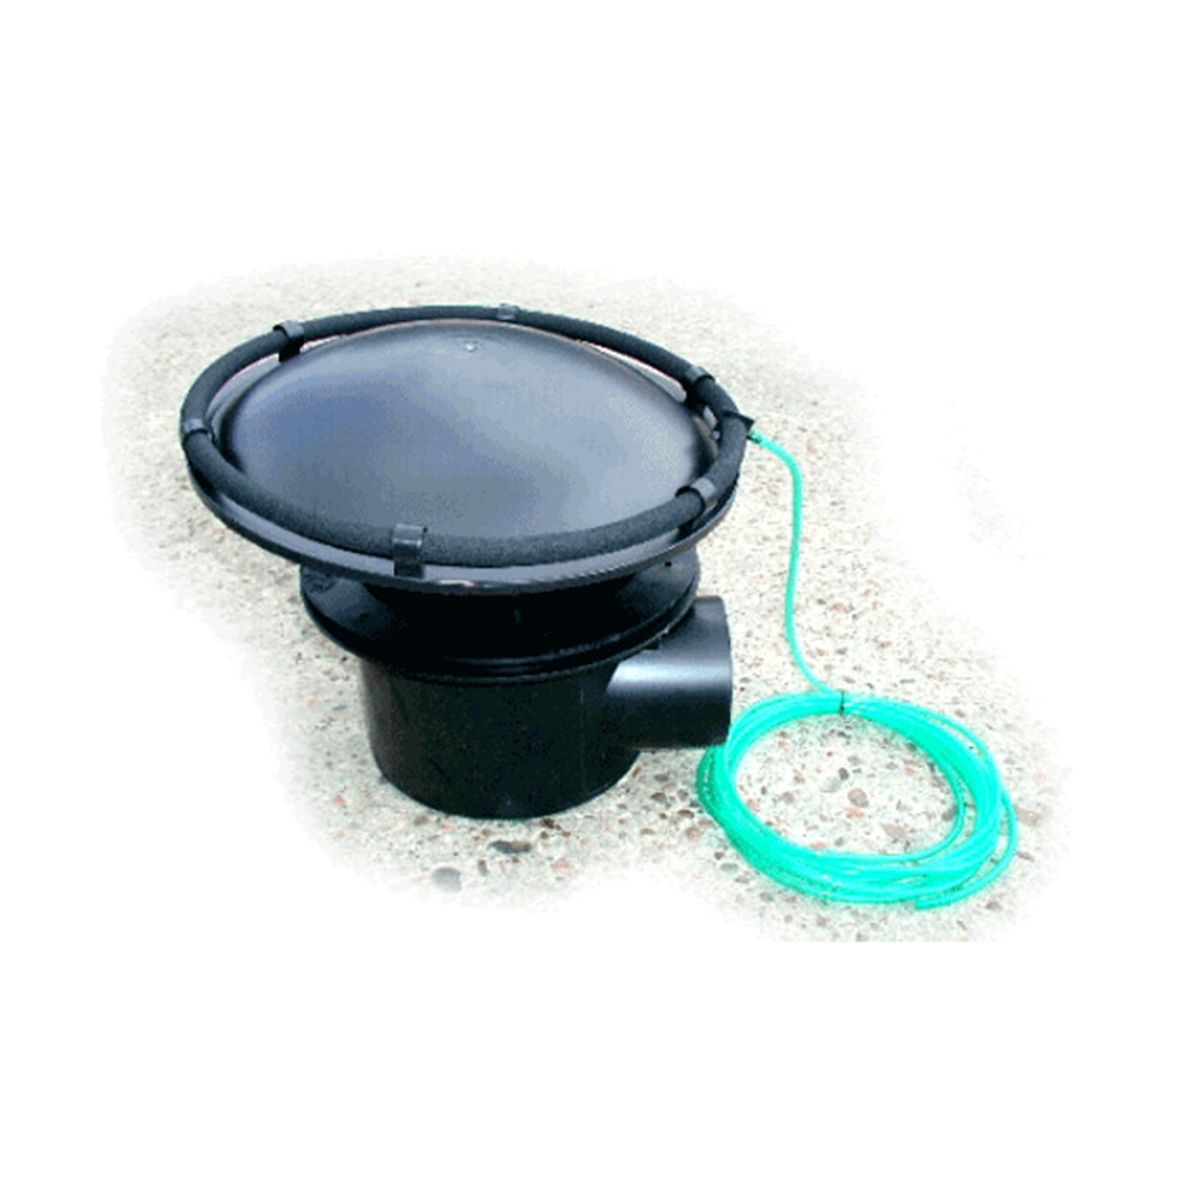 Cloverleaf Weighted Air Rings 250m 300m Koi Fish Pond Water Ring Yamitsu 4 Way Switch Box Sentinel Aeration Drain Thumbnail